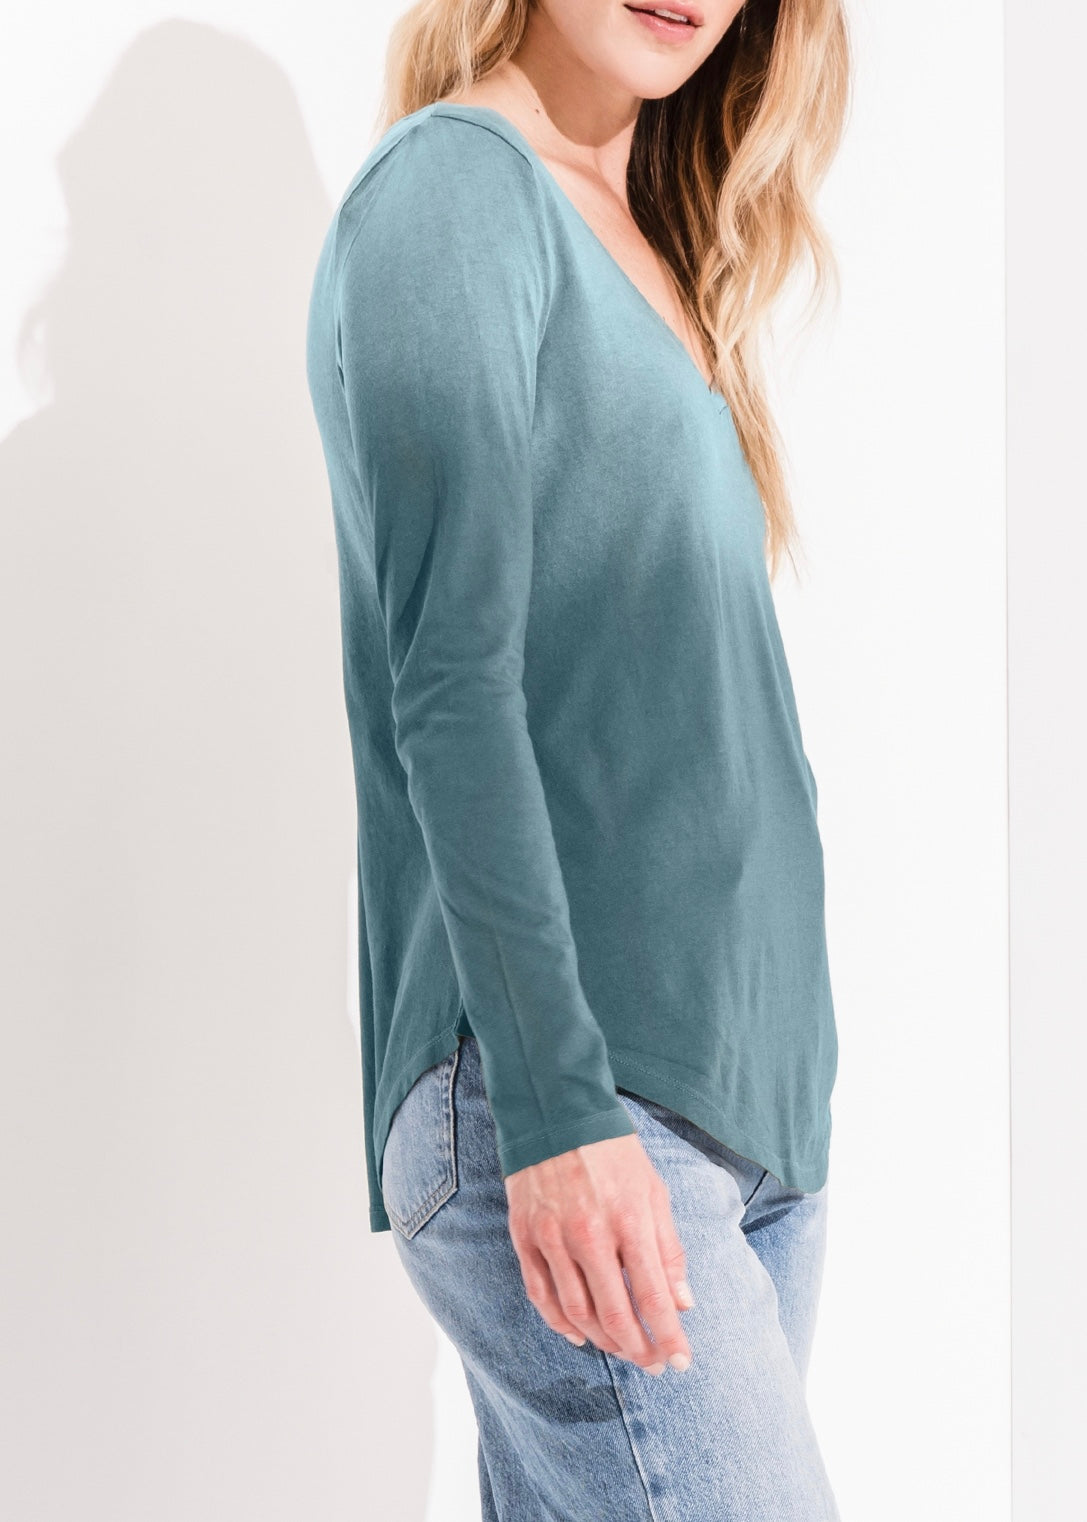 The Ombre Long Sleeve Tee